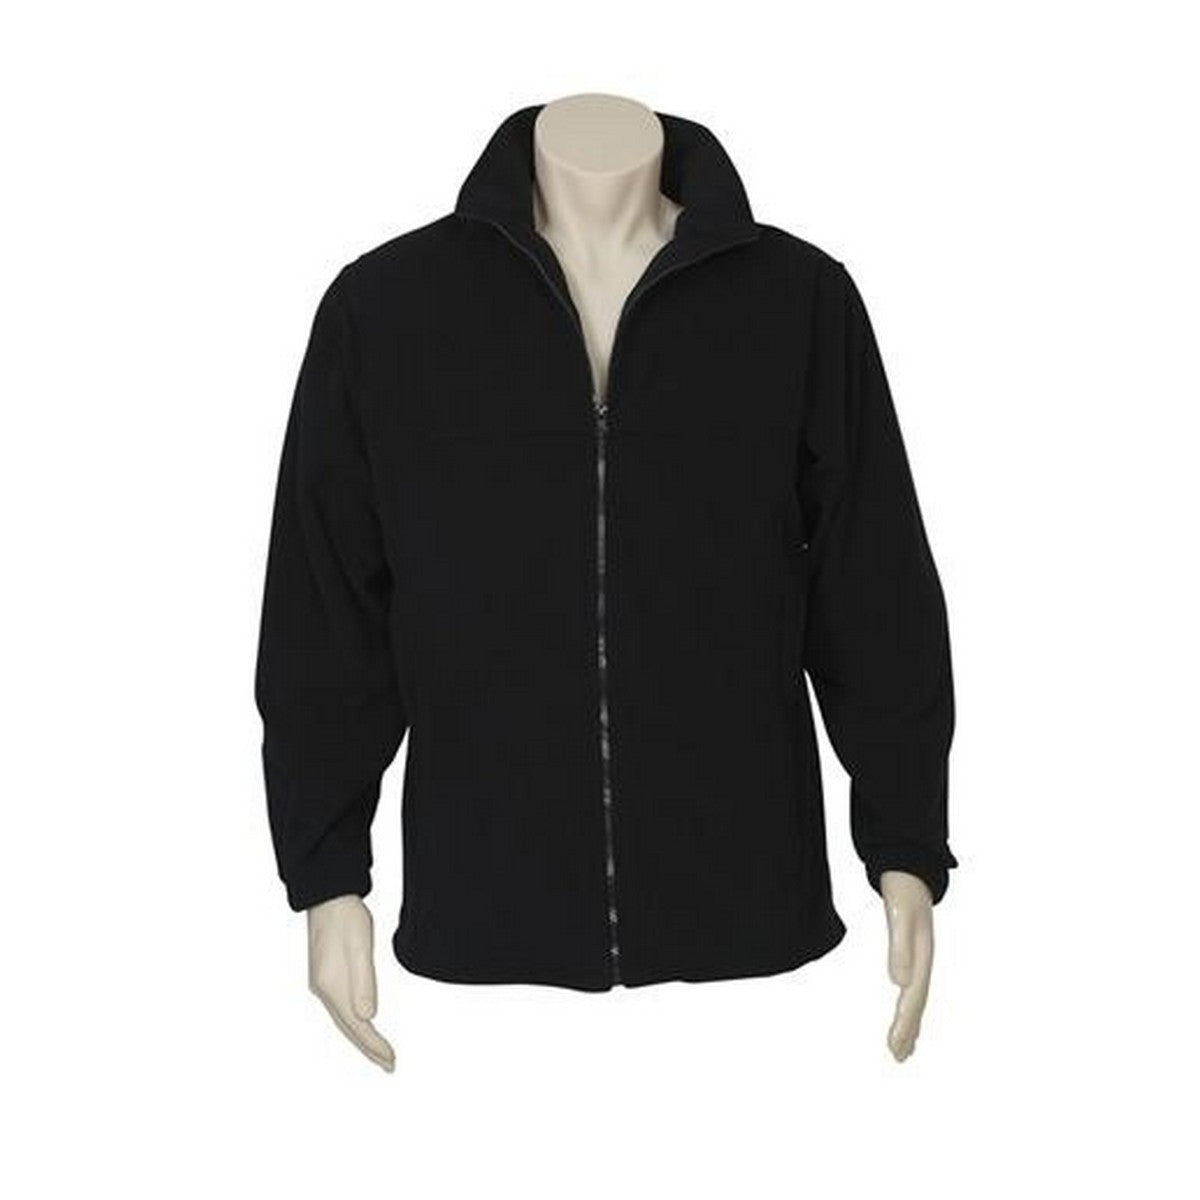 Image of Polar Fleece Jacket